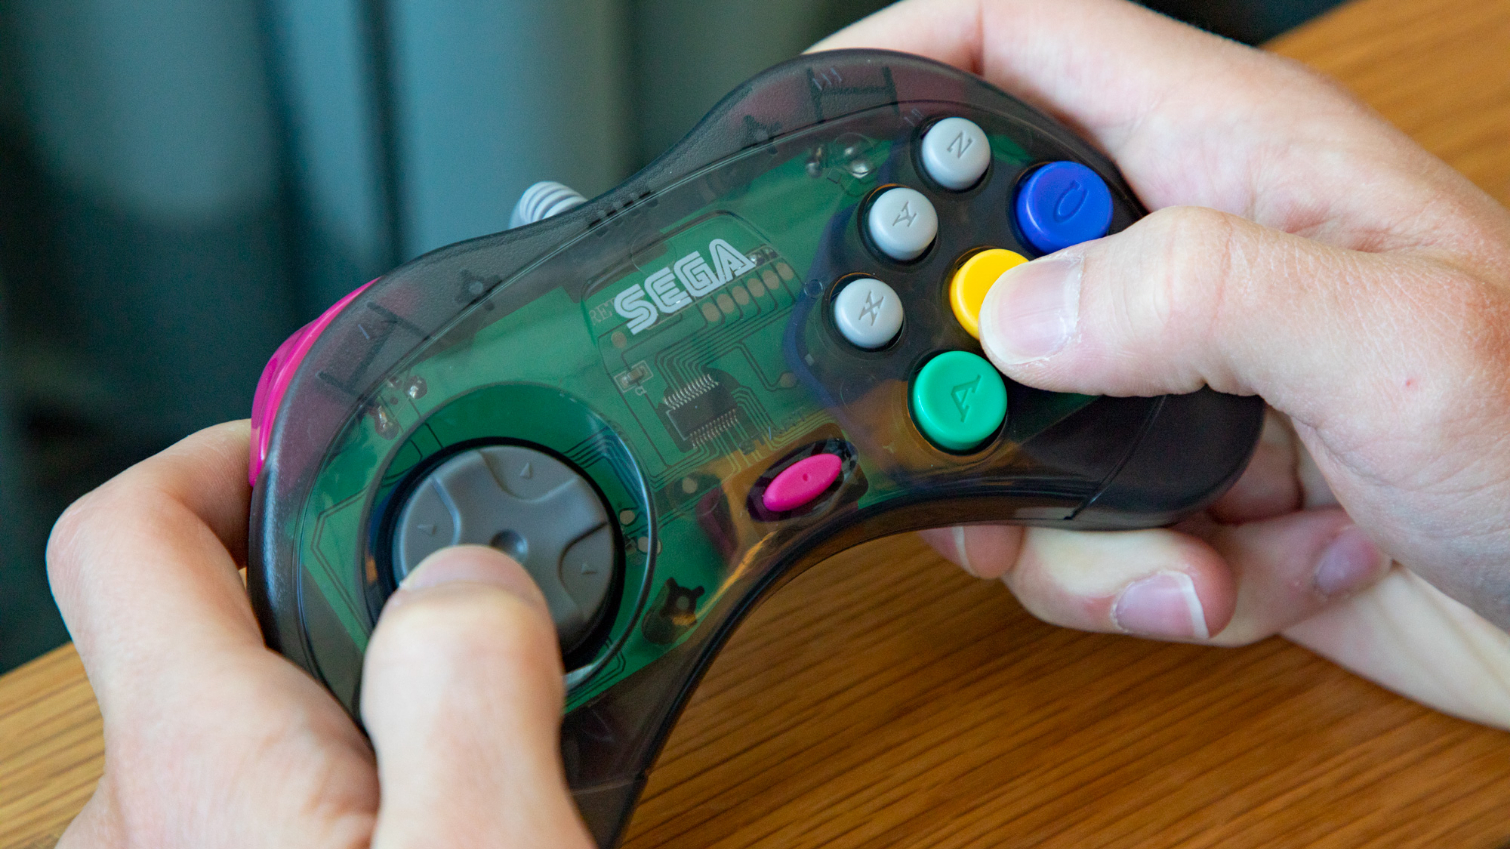 Retro-Bit's Sega Genesis and Saturn Controllers Are Awesomely